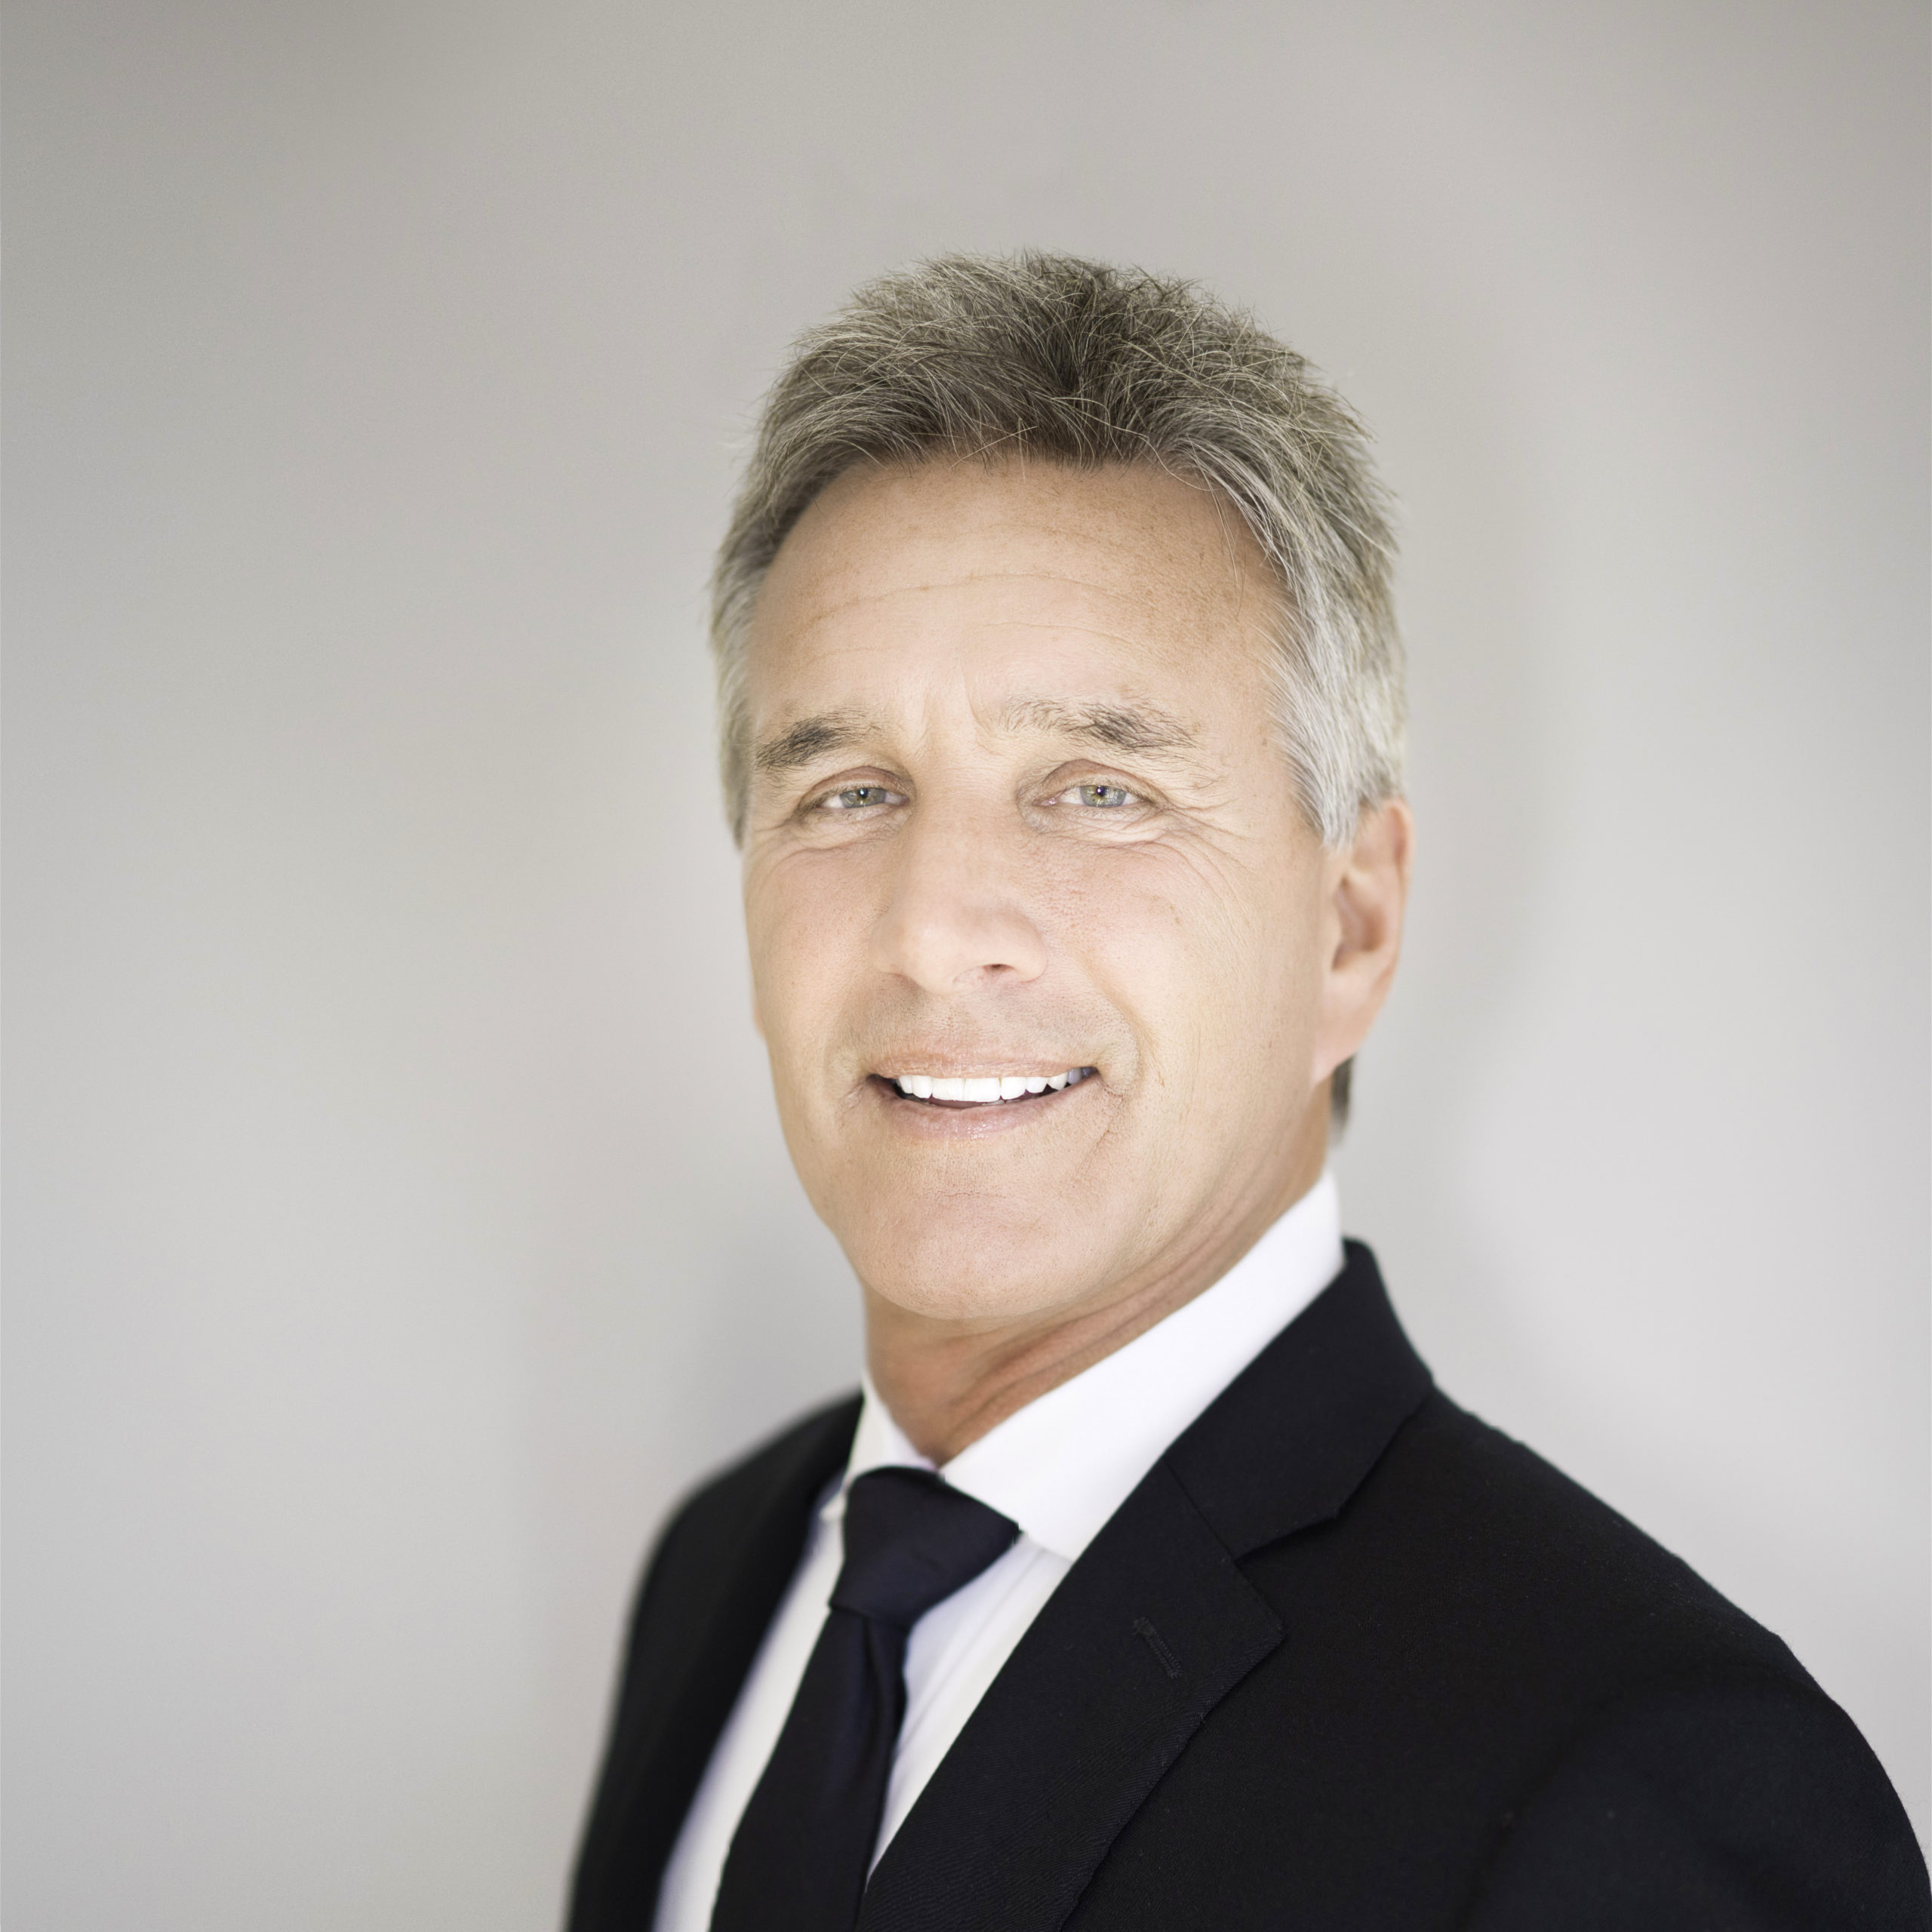 Todd Bourgard, Douglas Elliman's senior executive regional manager of sales for the Hamptons.